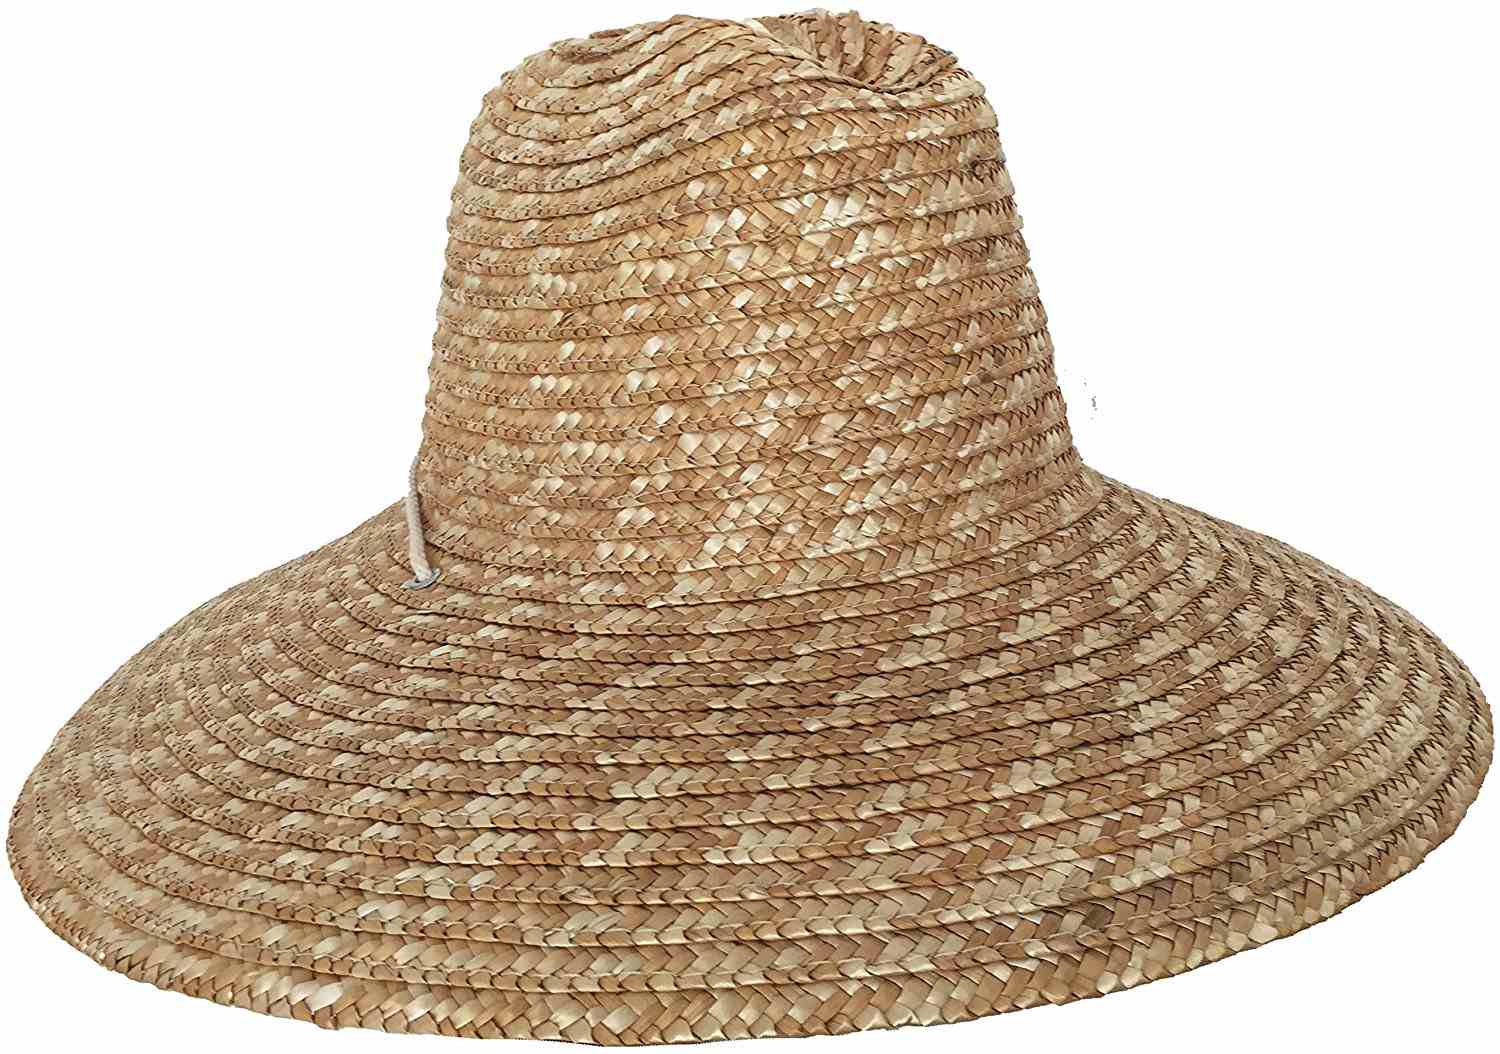 Super Wide Brim Lifeguard Hat Straw Beach Sun Summer Surf Safari Gardening  UPF b71f6efee4d